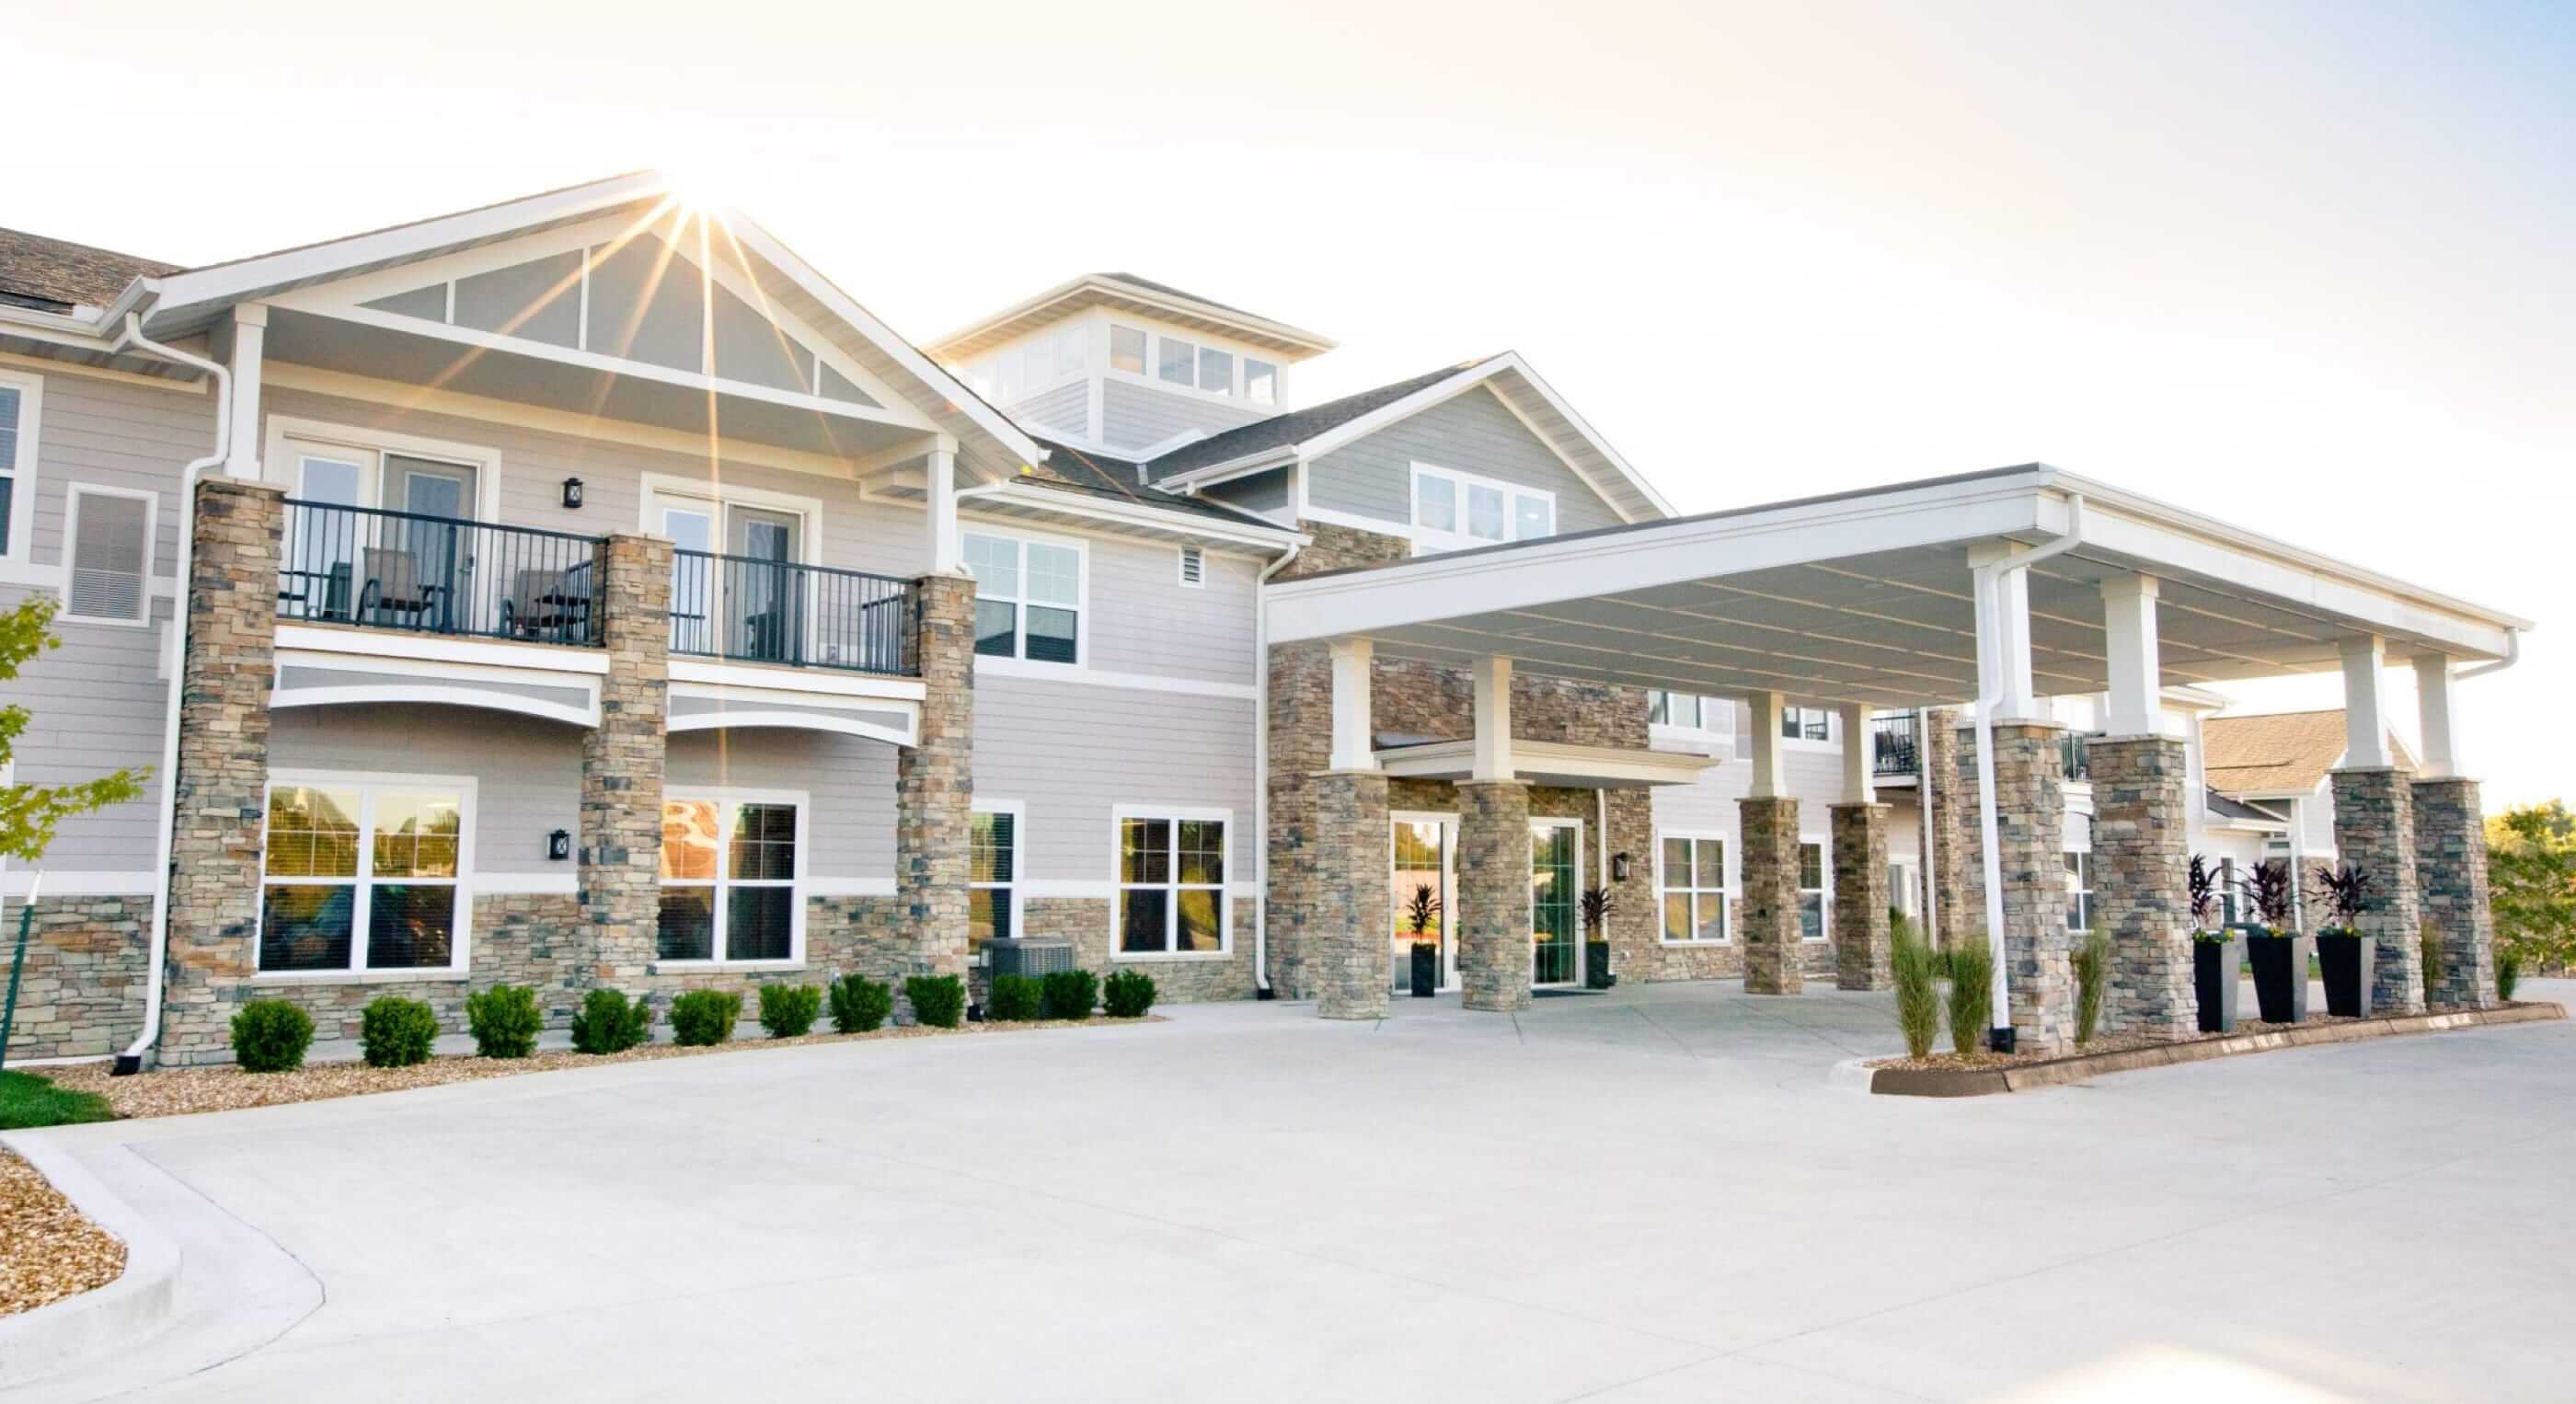 The Facade of a Brand-New Senior Living Community in Frankfort, Illinois